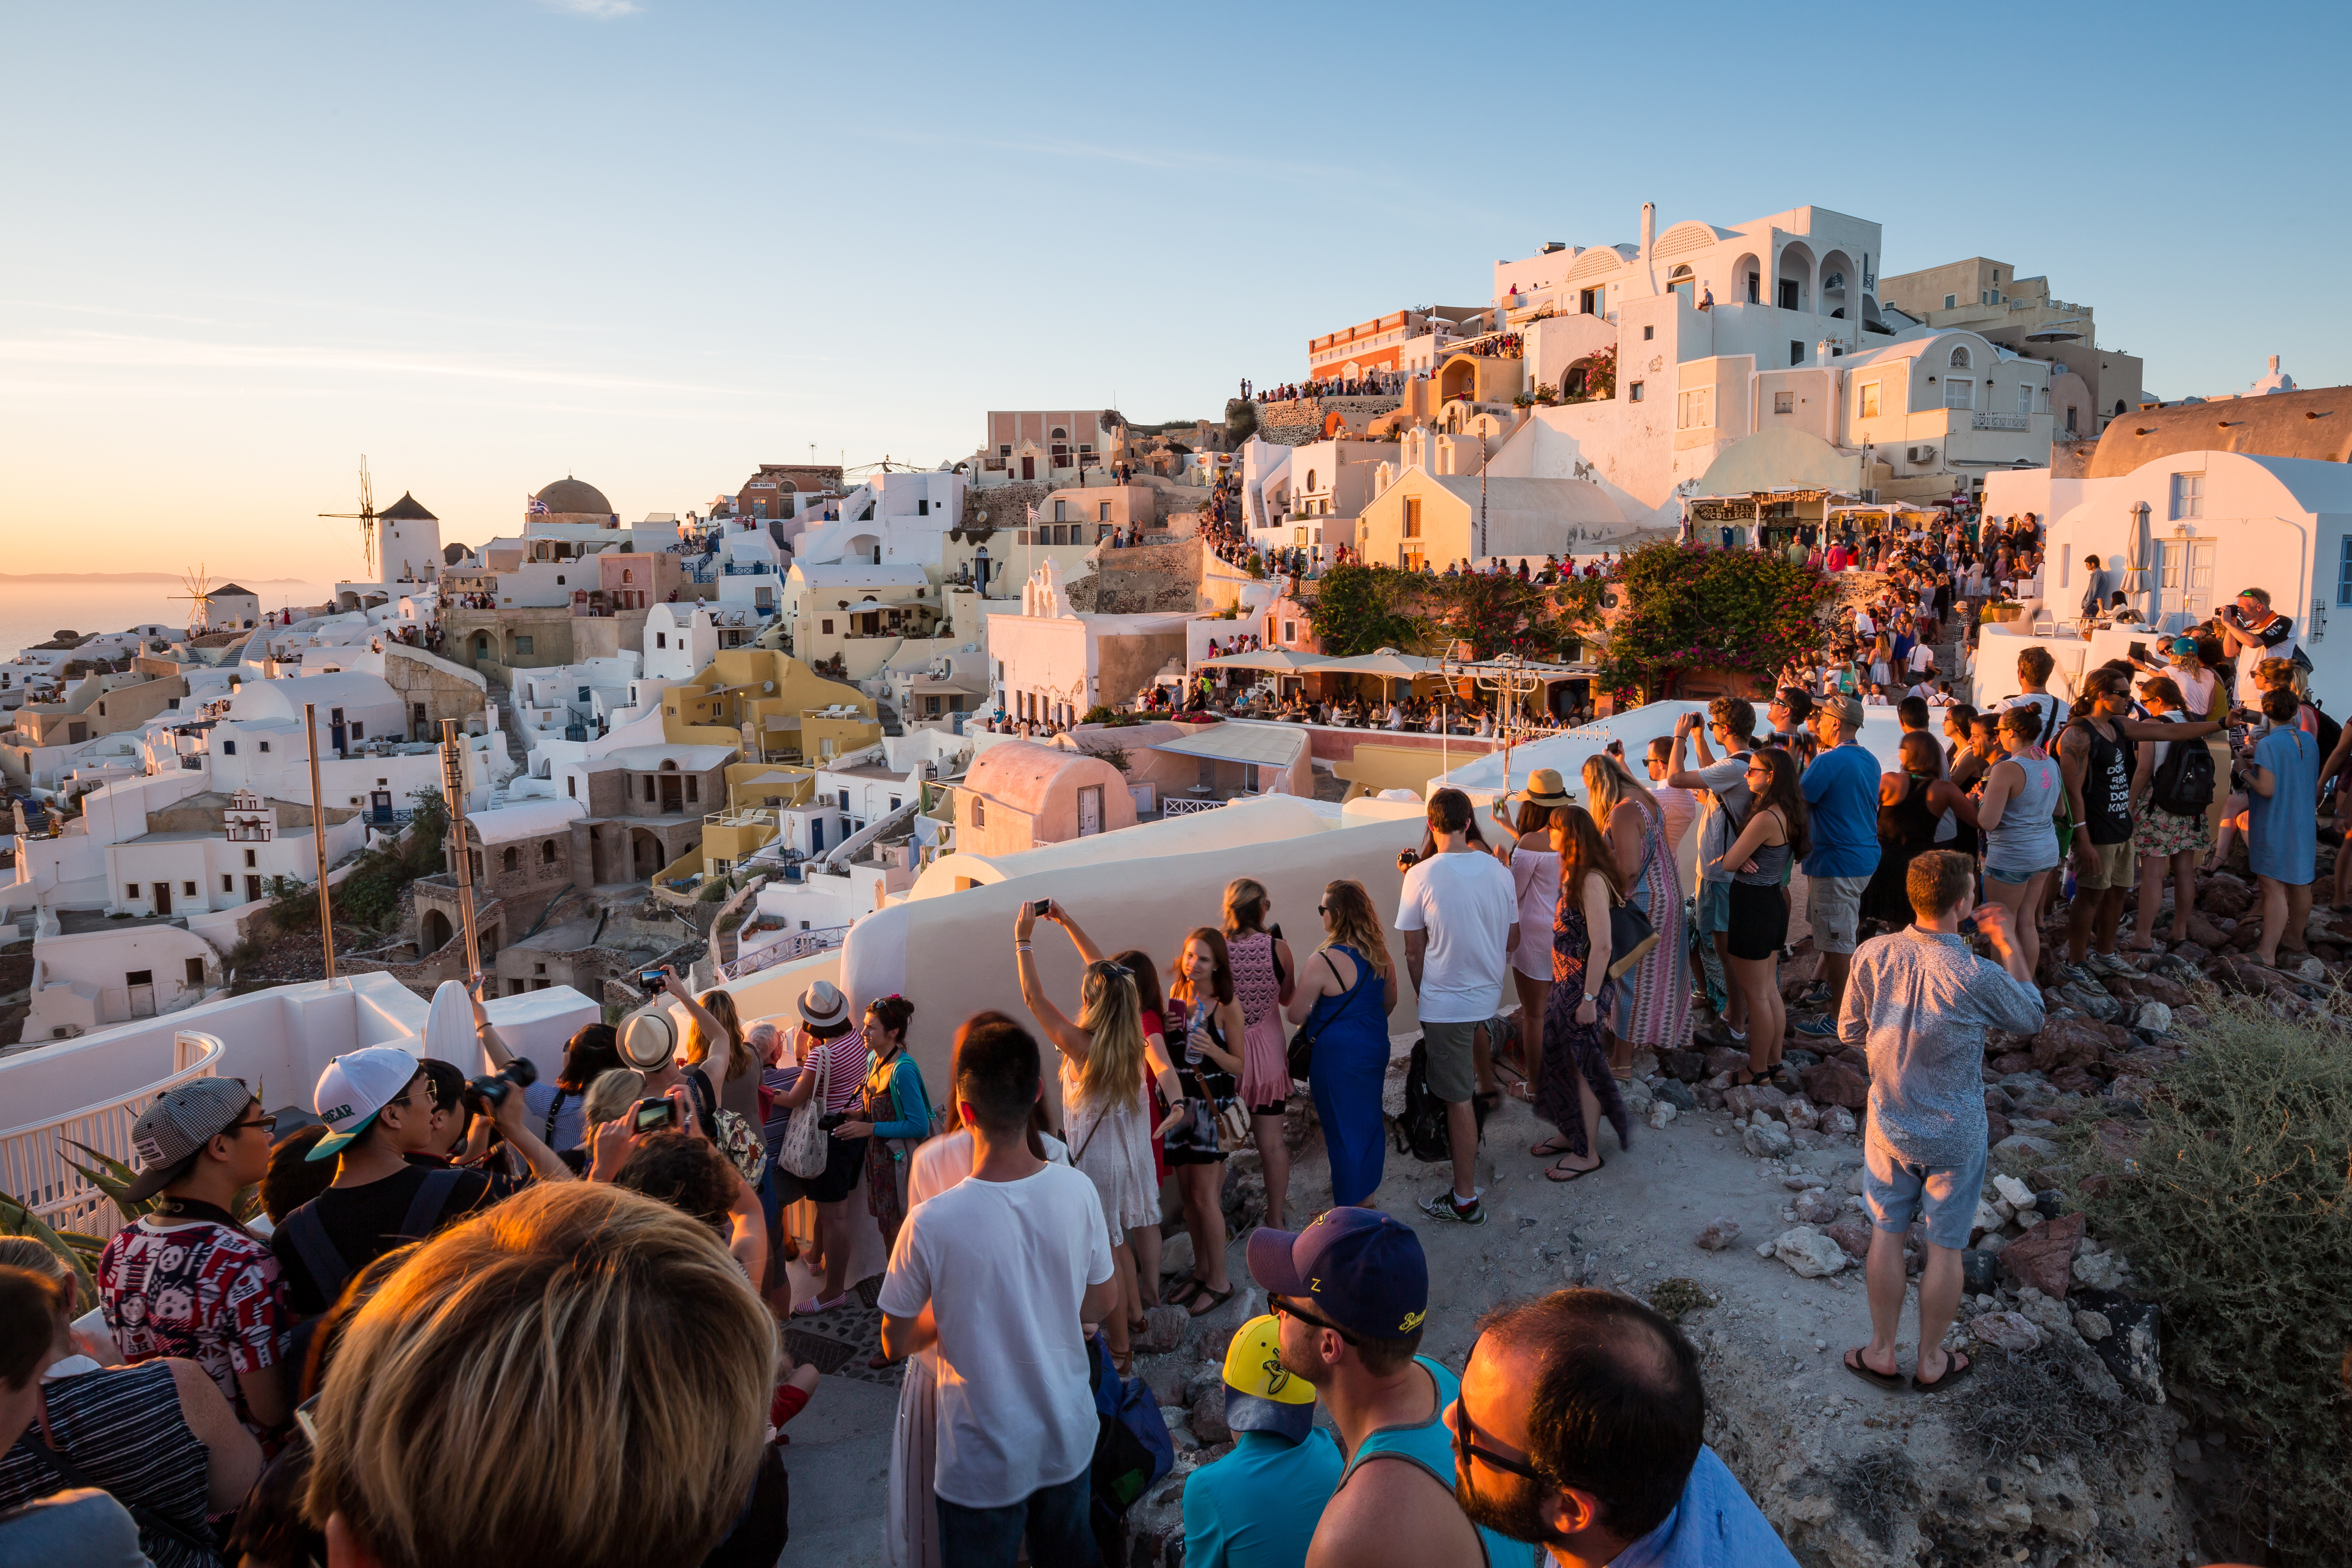 People line the towns walls, for the famous Oia sunset on the Greek island of Santorini, Cyclades, Greek Islands, Greece, Europe